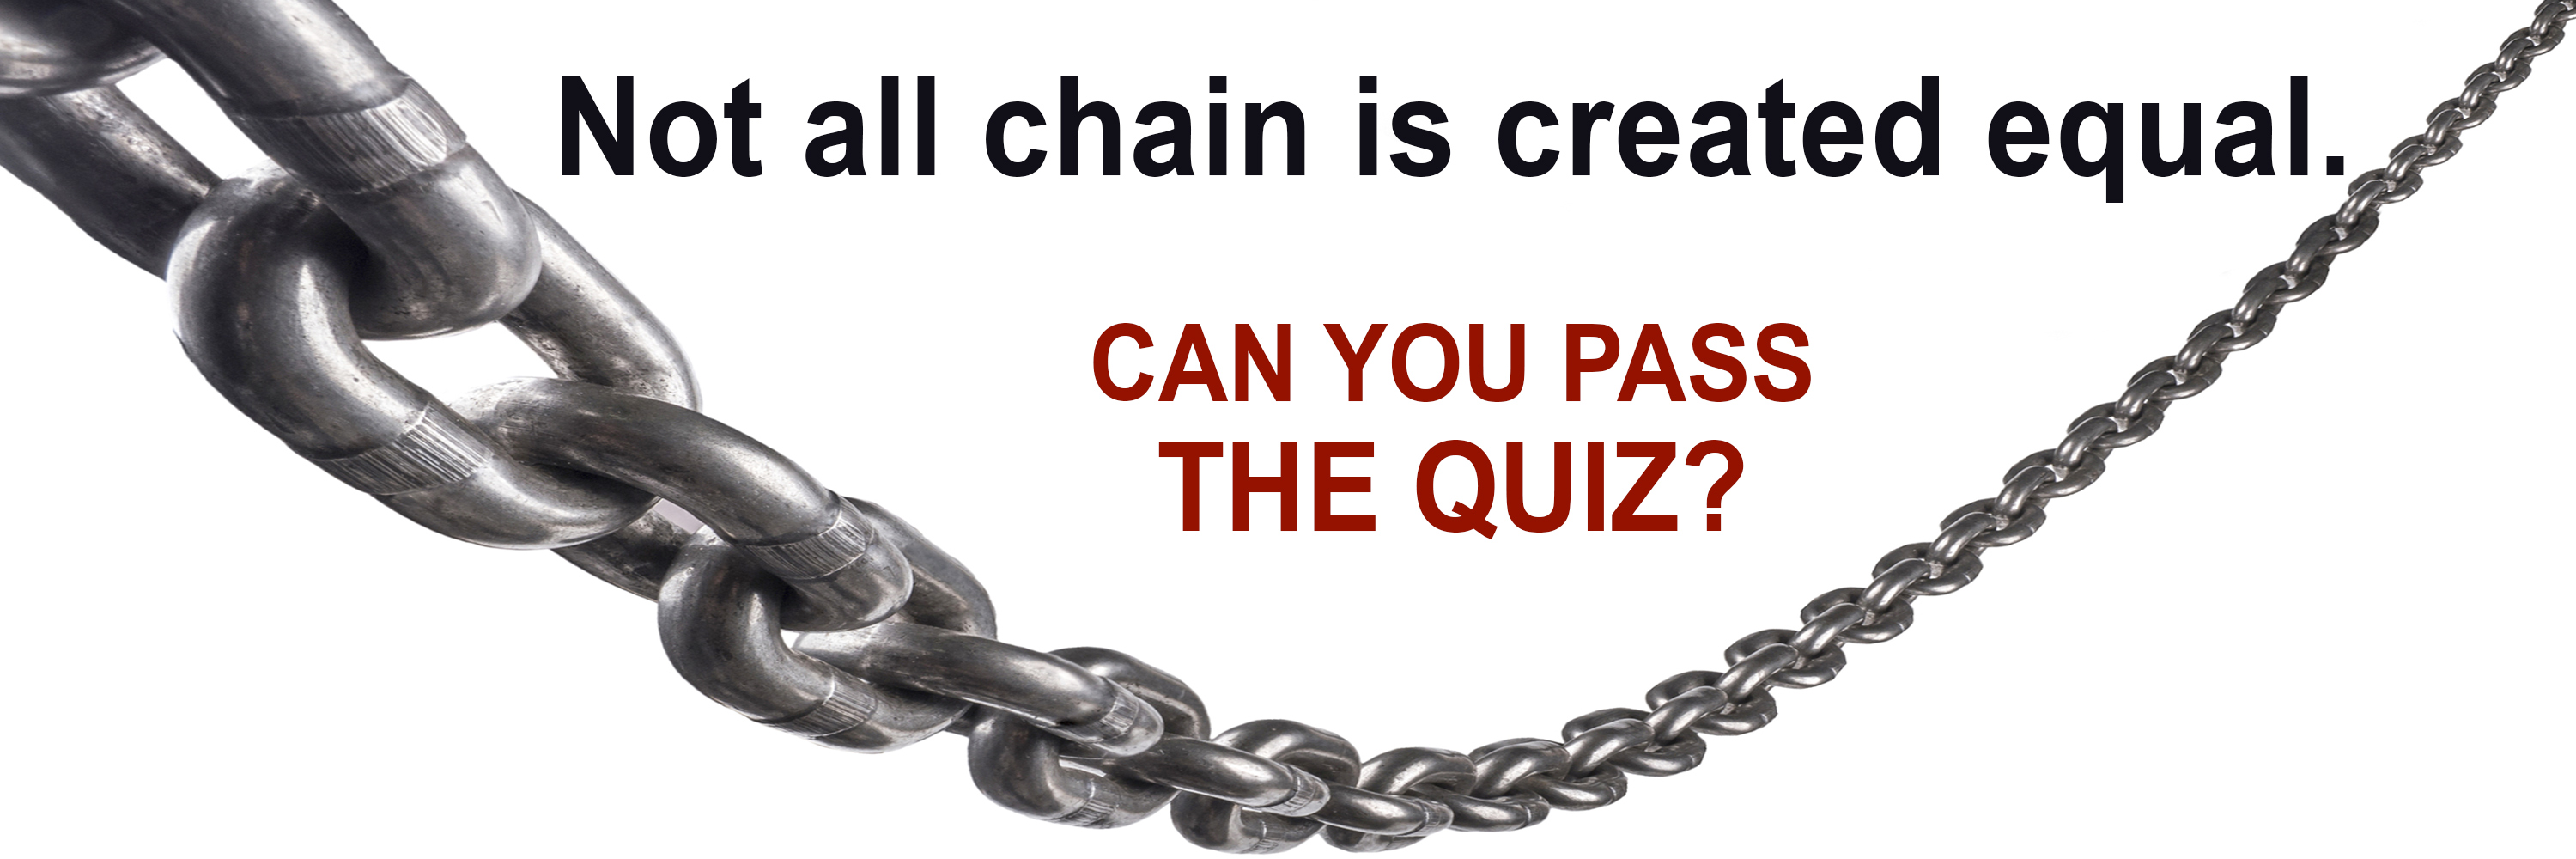 Chain Quiz Header